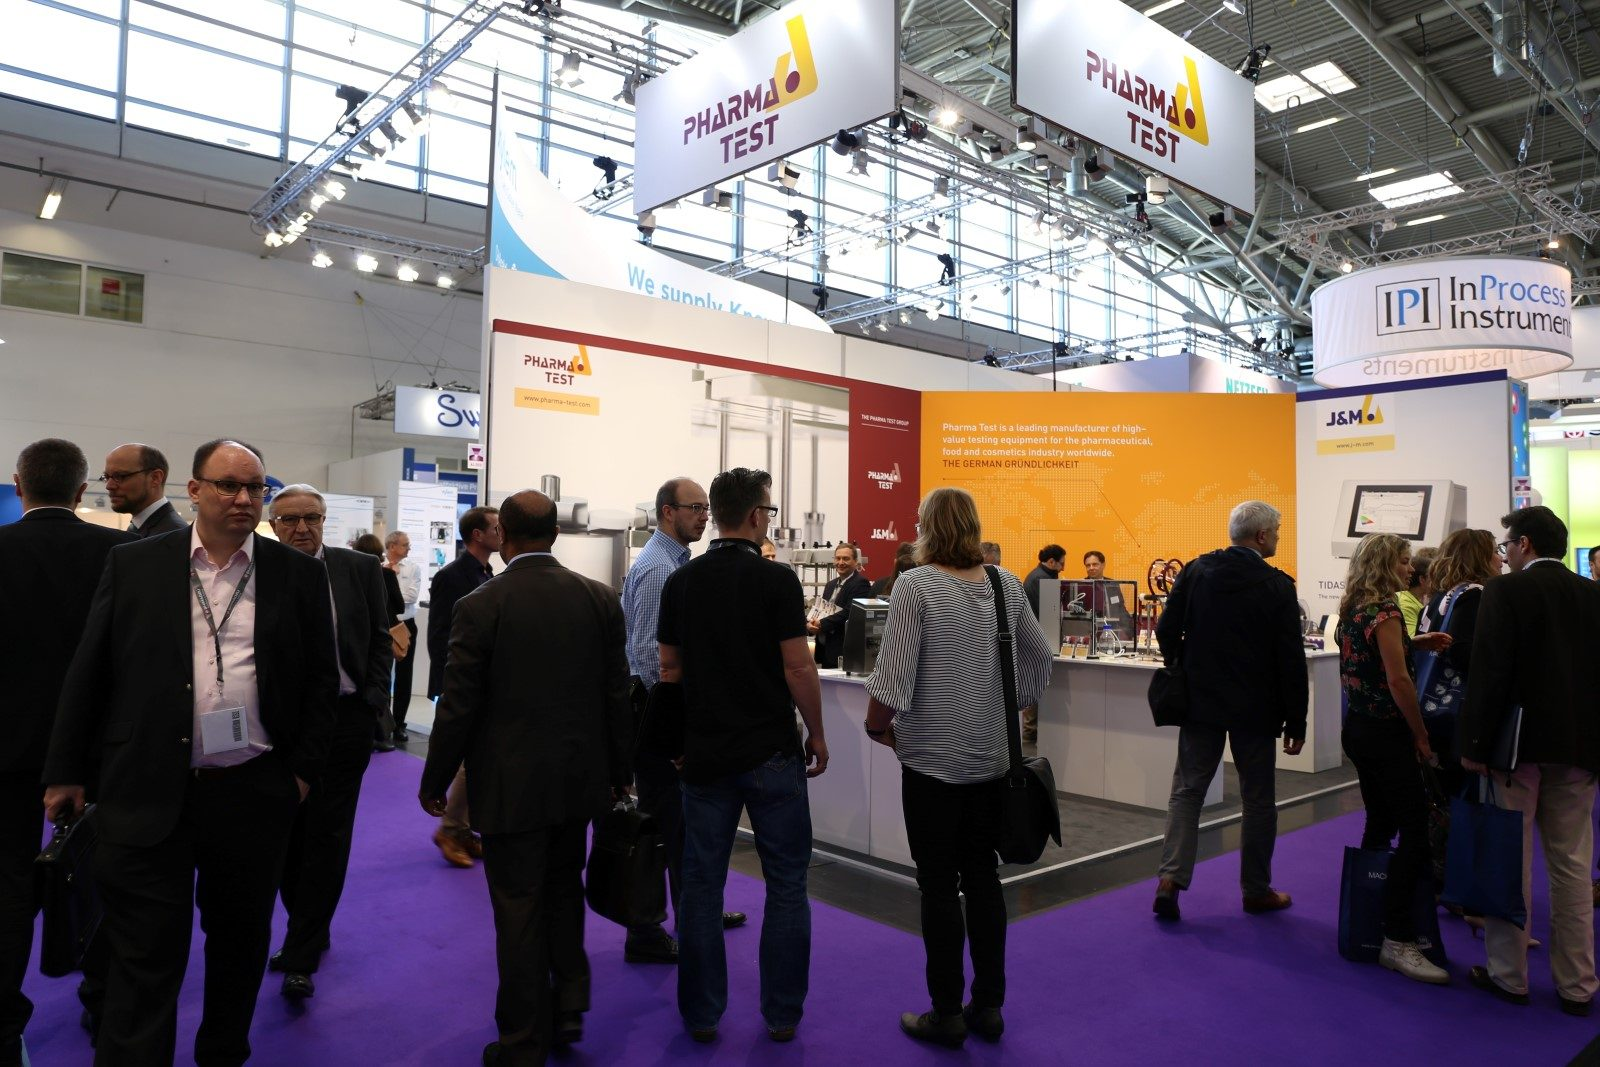 THE PHARMA TEST GROUP booth at analytica 2018